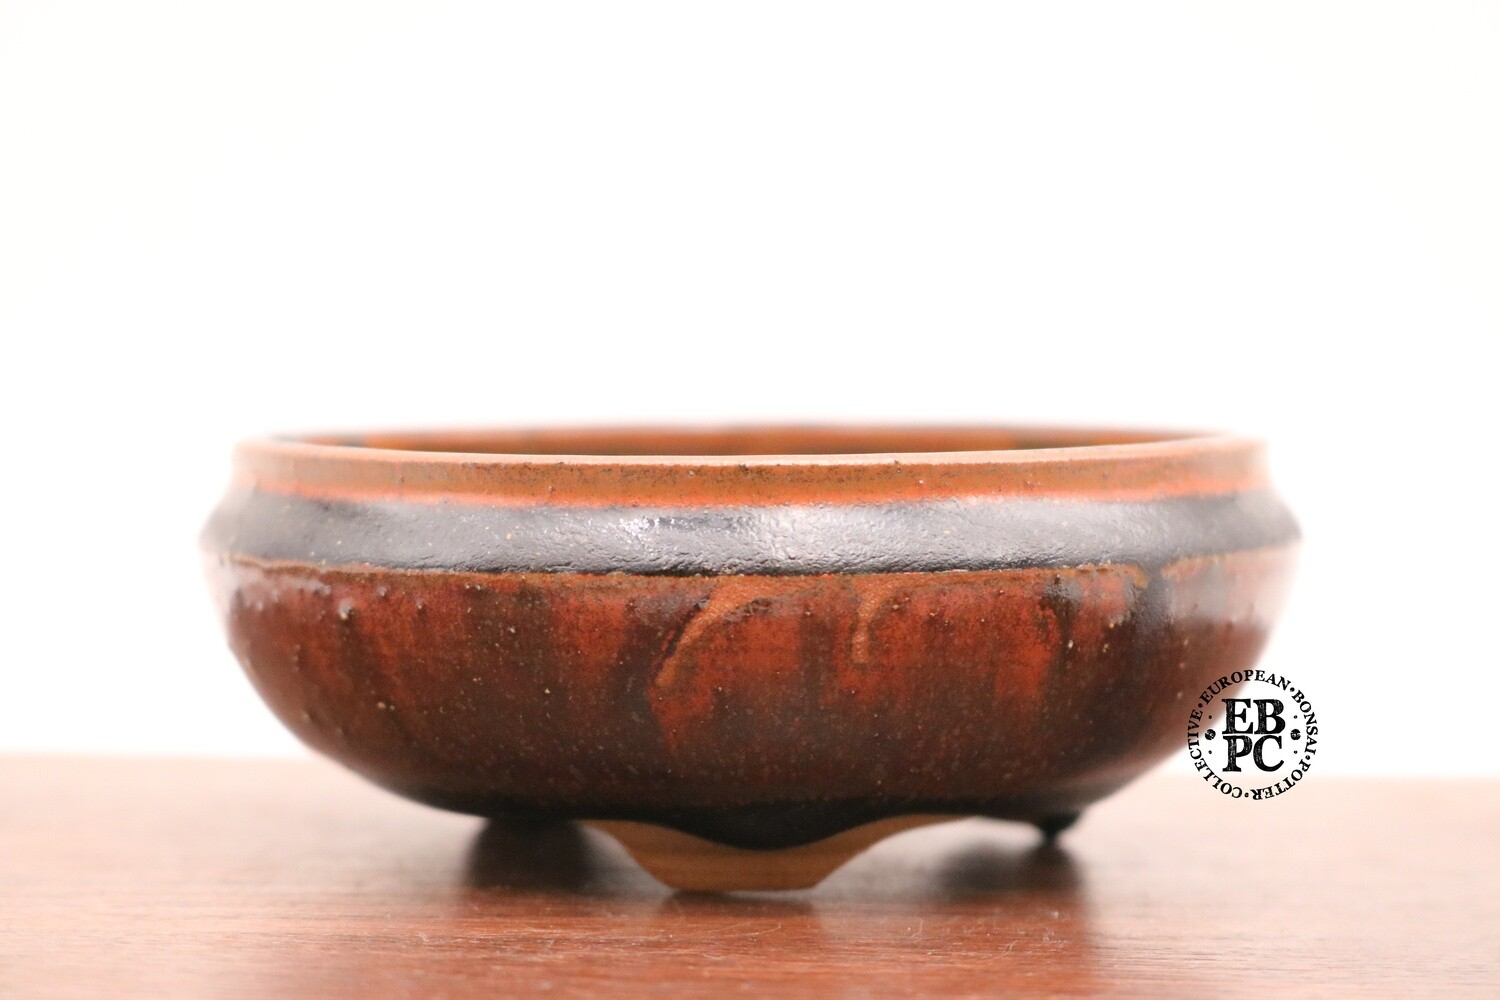 SOLD - PAS Pots - 11.2cm  Round; Shohin / Accent pot; Hand Thrown; Reddish-brown Glaze; Glaze drips; Detailed foot ring; Patricia